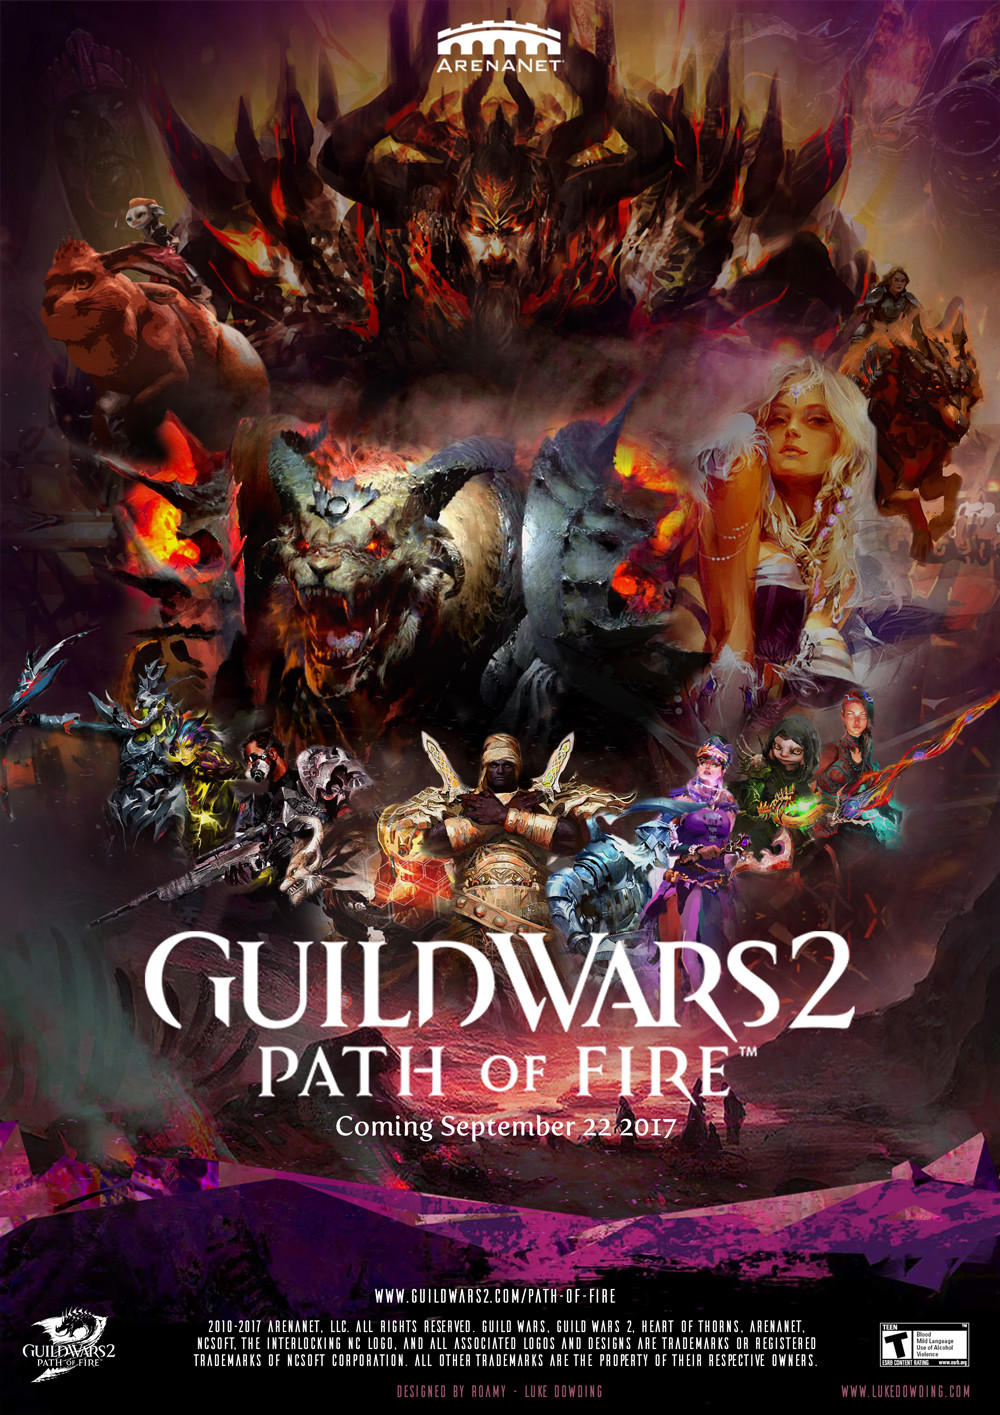 guild wars 2 path of fire movie poster